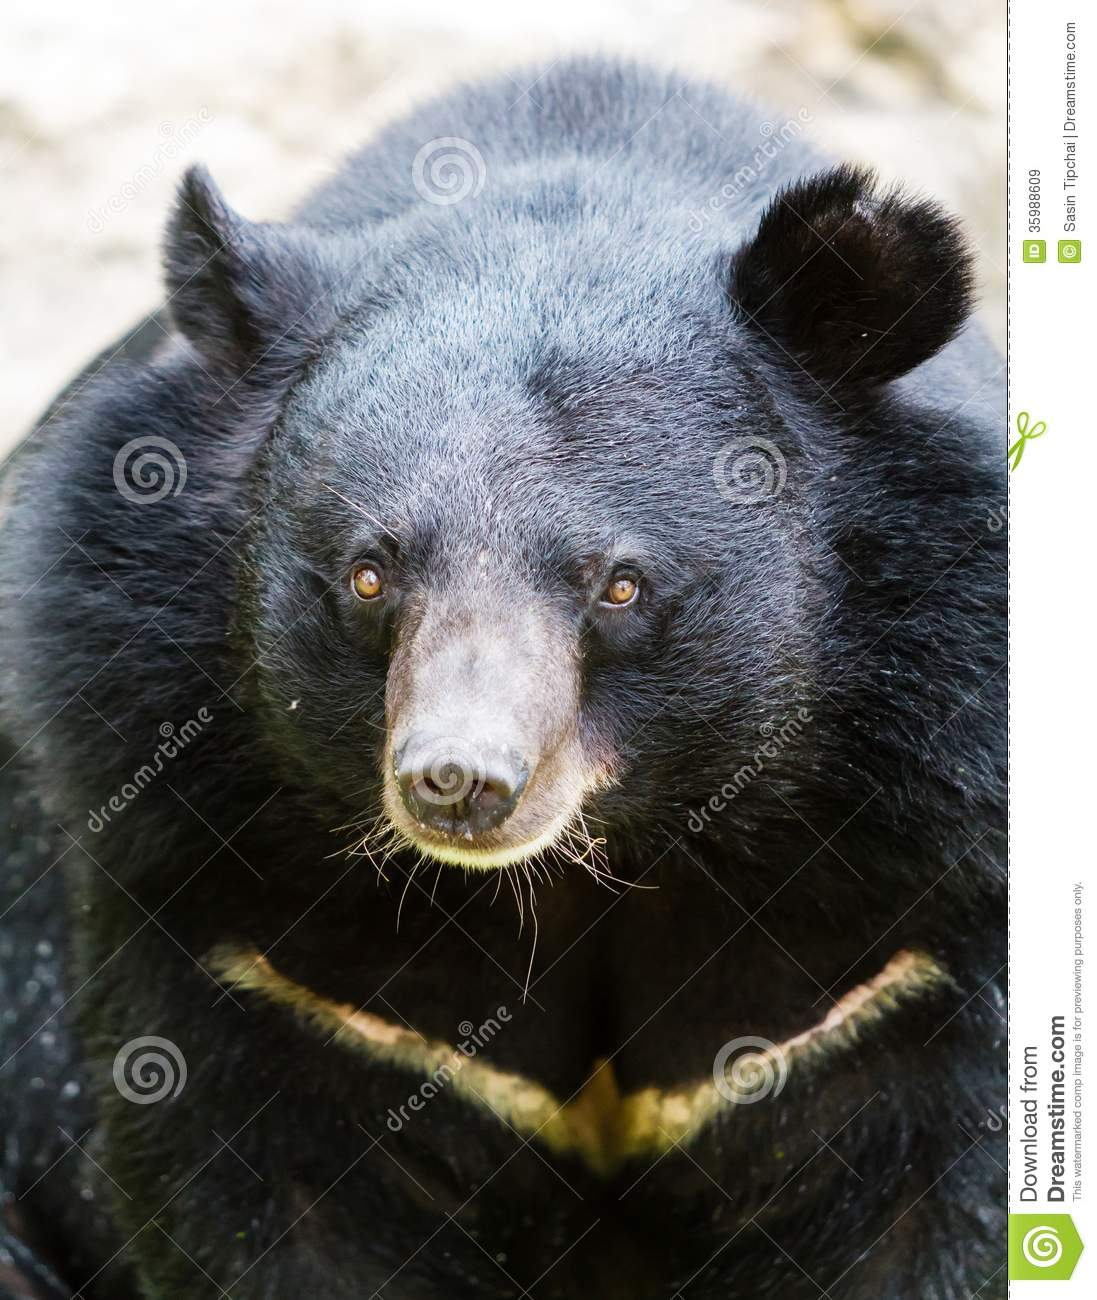 Black bear head profile - photo#4